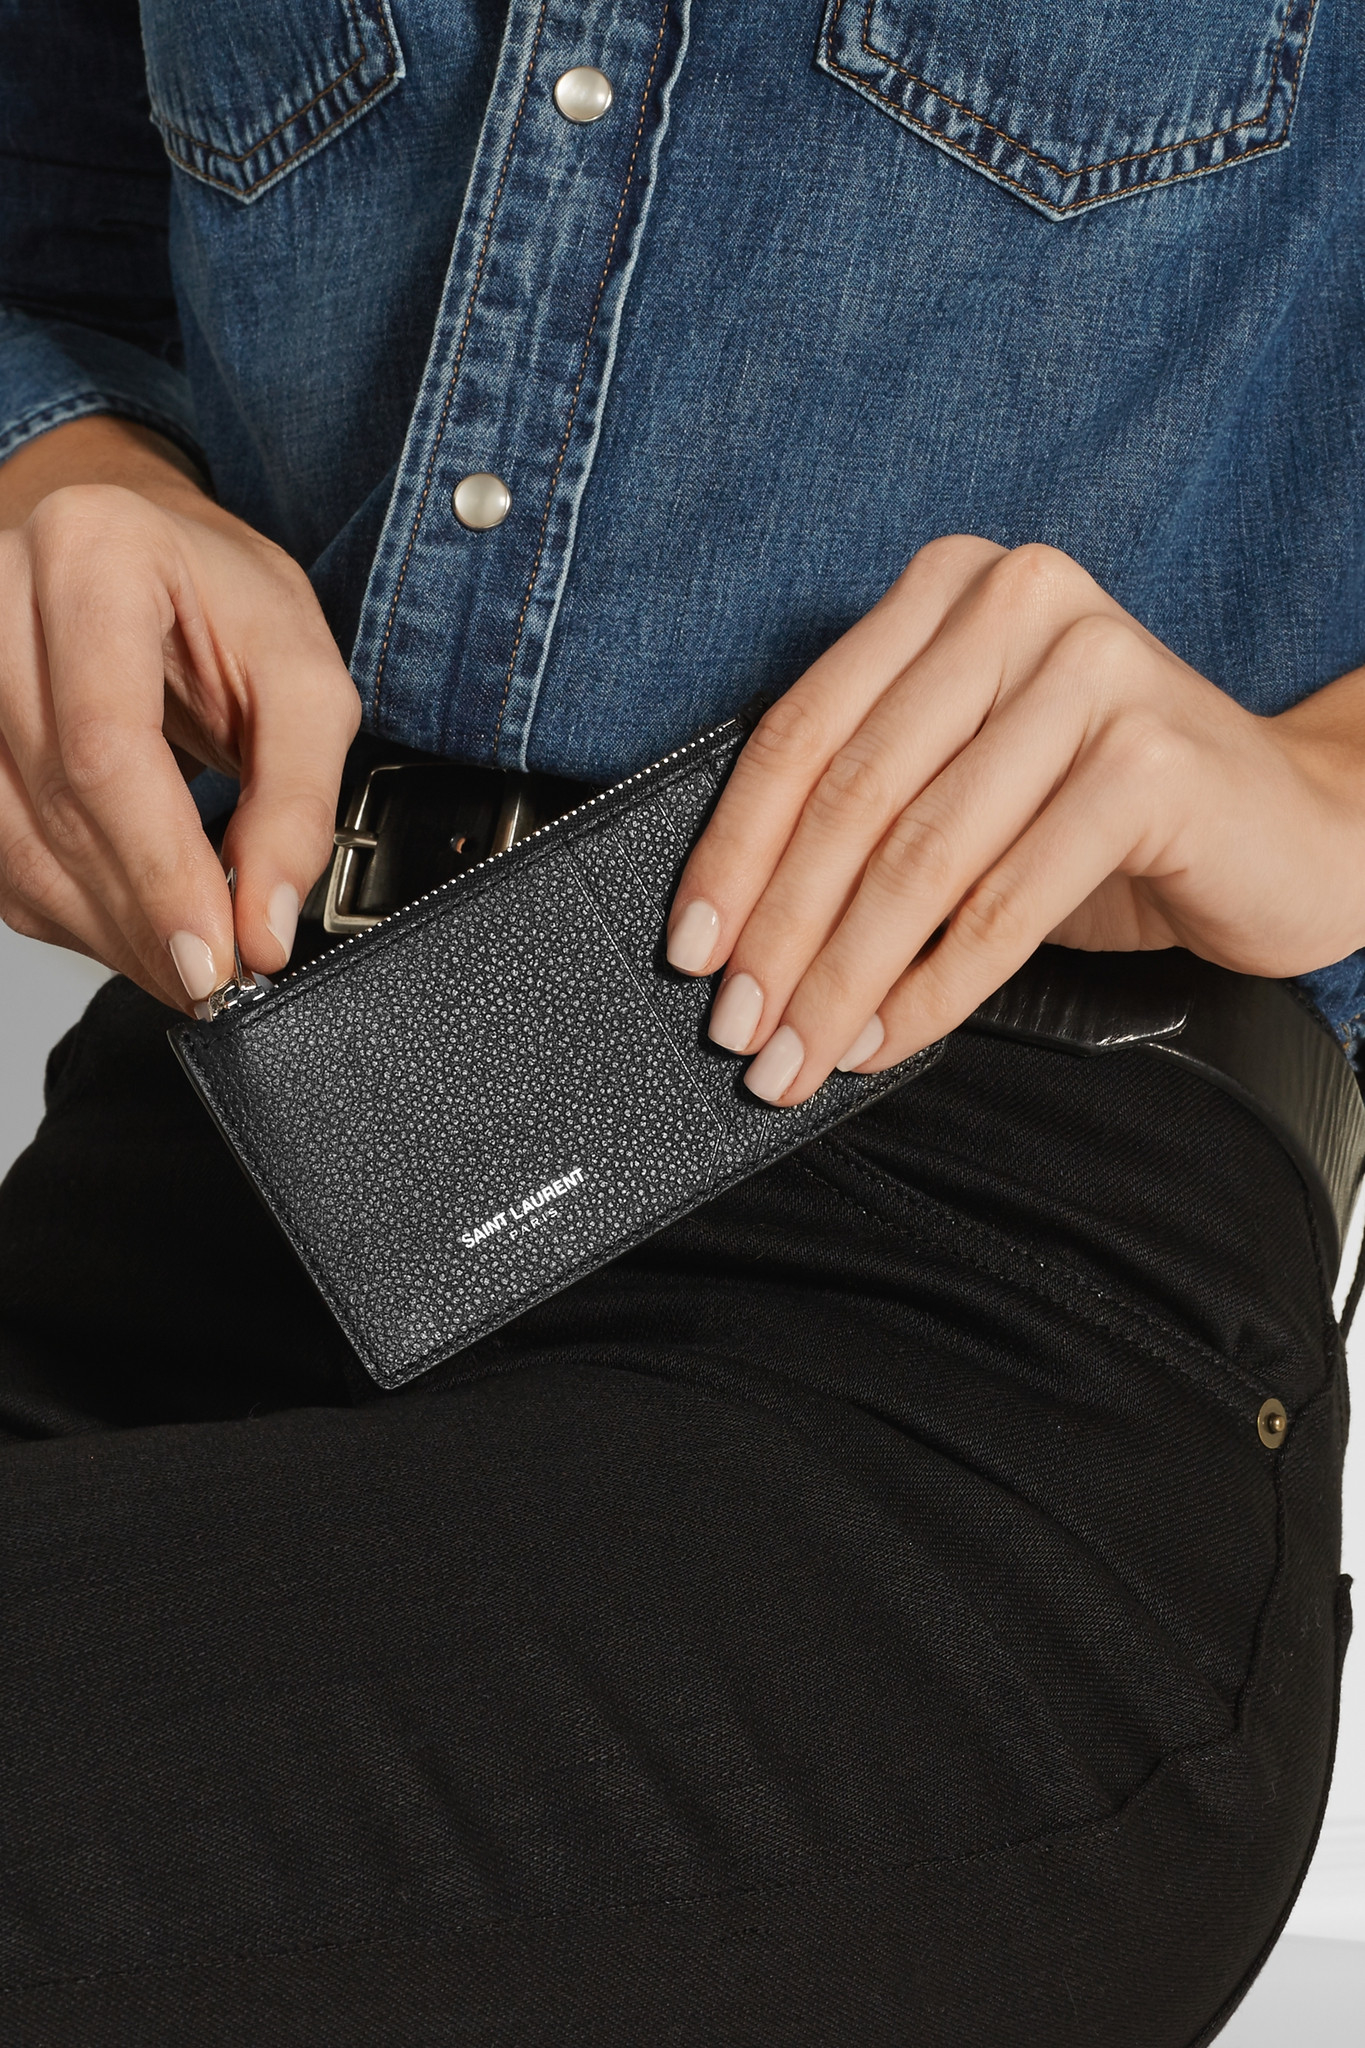 Saint Laurent Textured-leather Cardholder in Black - Lyst 2e7069f770